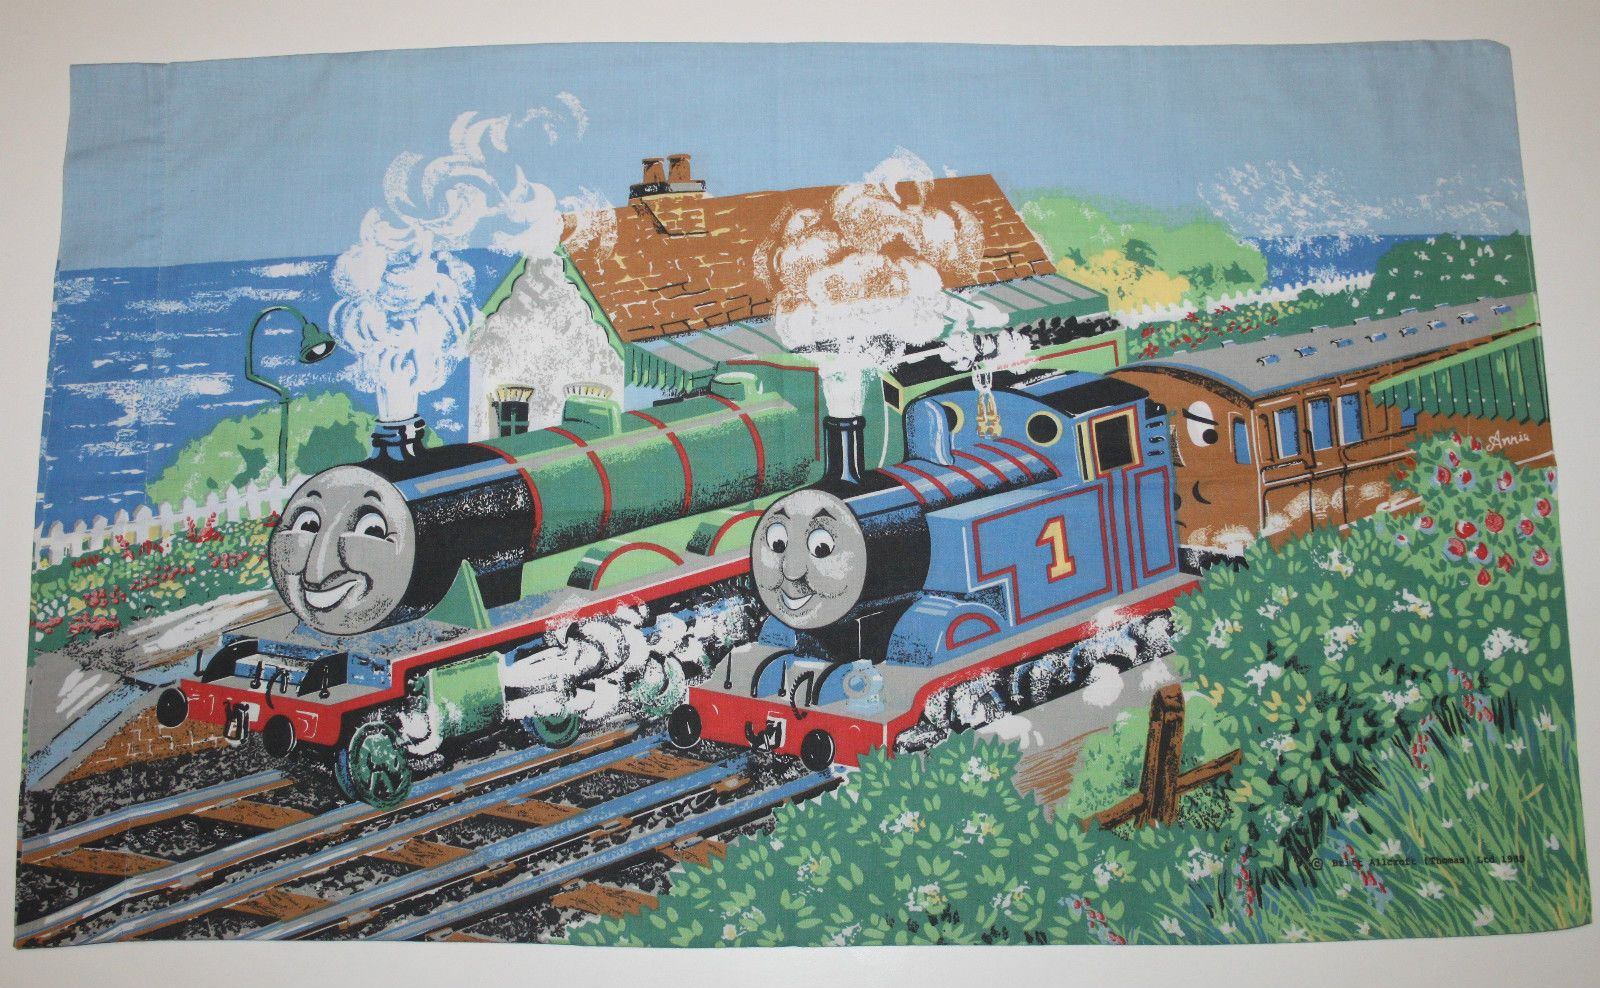 Thomas The Train Pillowcase Stunning Vintage Britt Allcroft 1989 Thomas Train Tank Engine Duvet Cover Inspiration Design